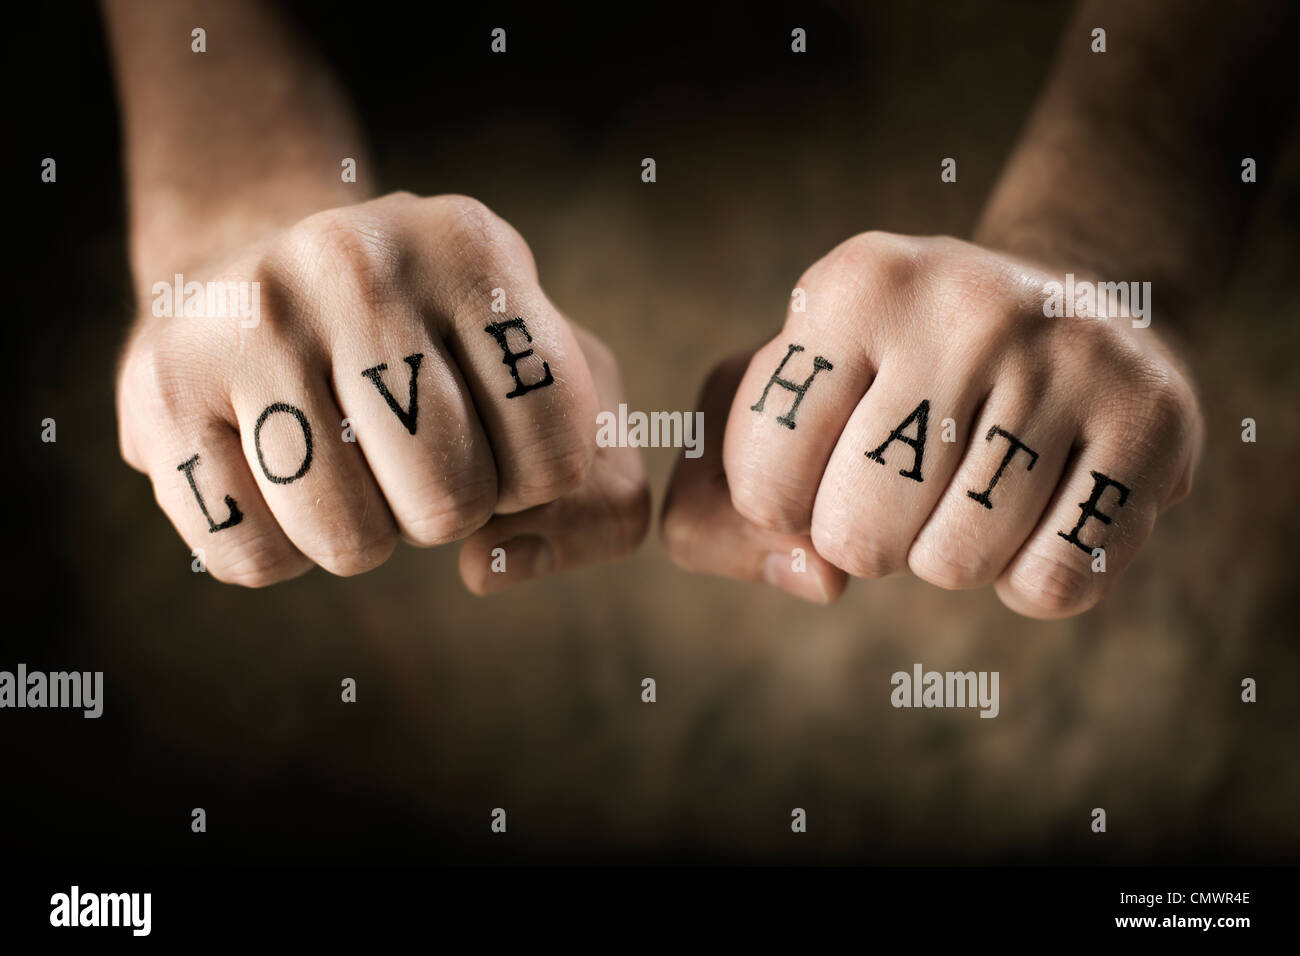 Man With Fake Love And Hate Tattoos On His Hands Stock